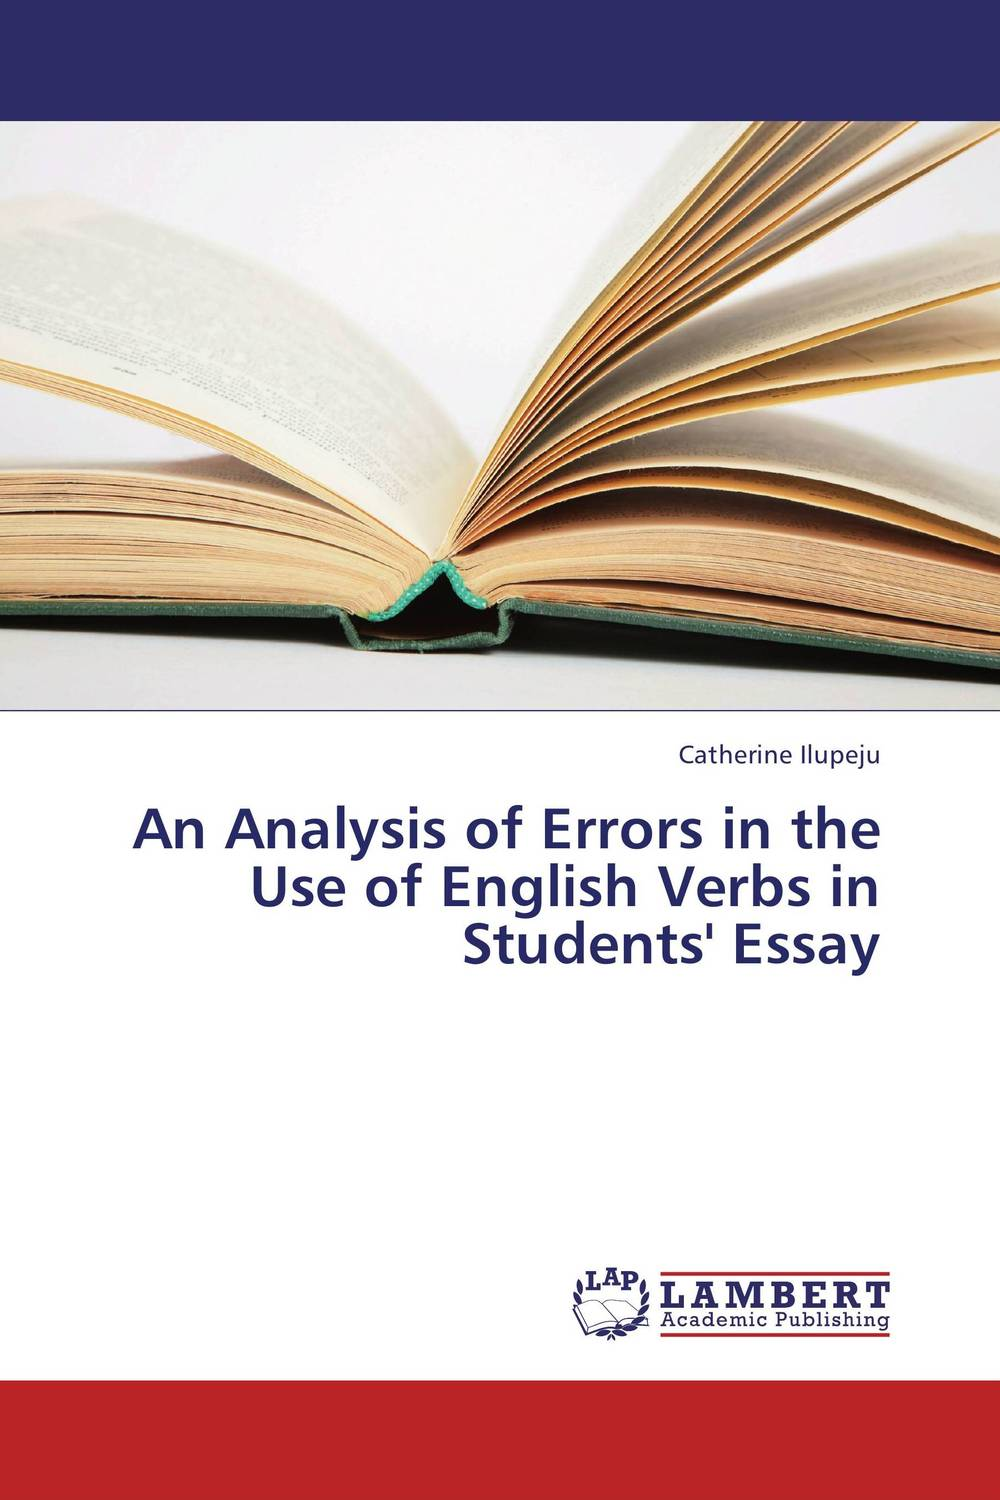 An Analysis of Errors in the Use of English Verbs in Students' Essay